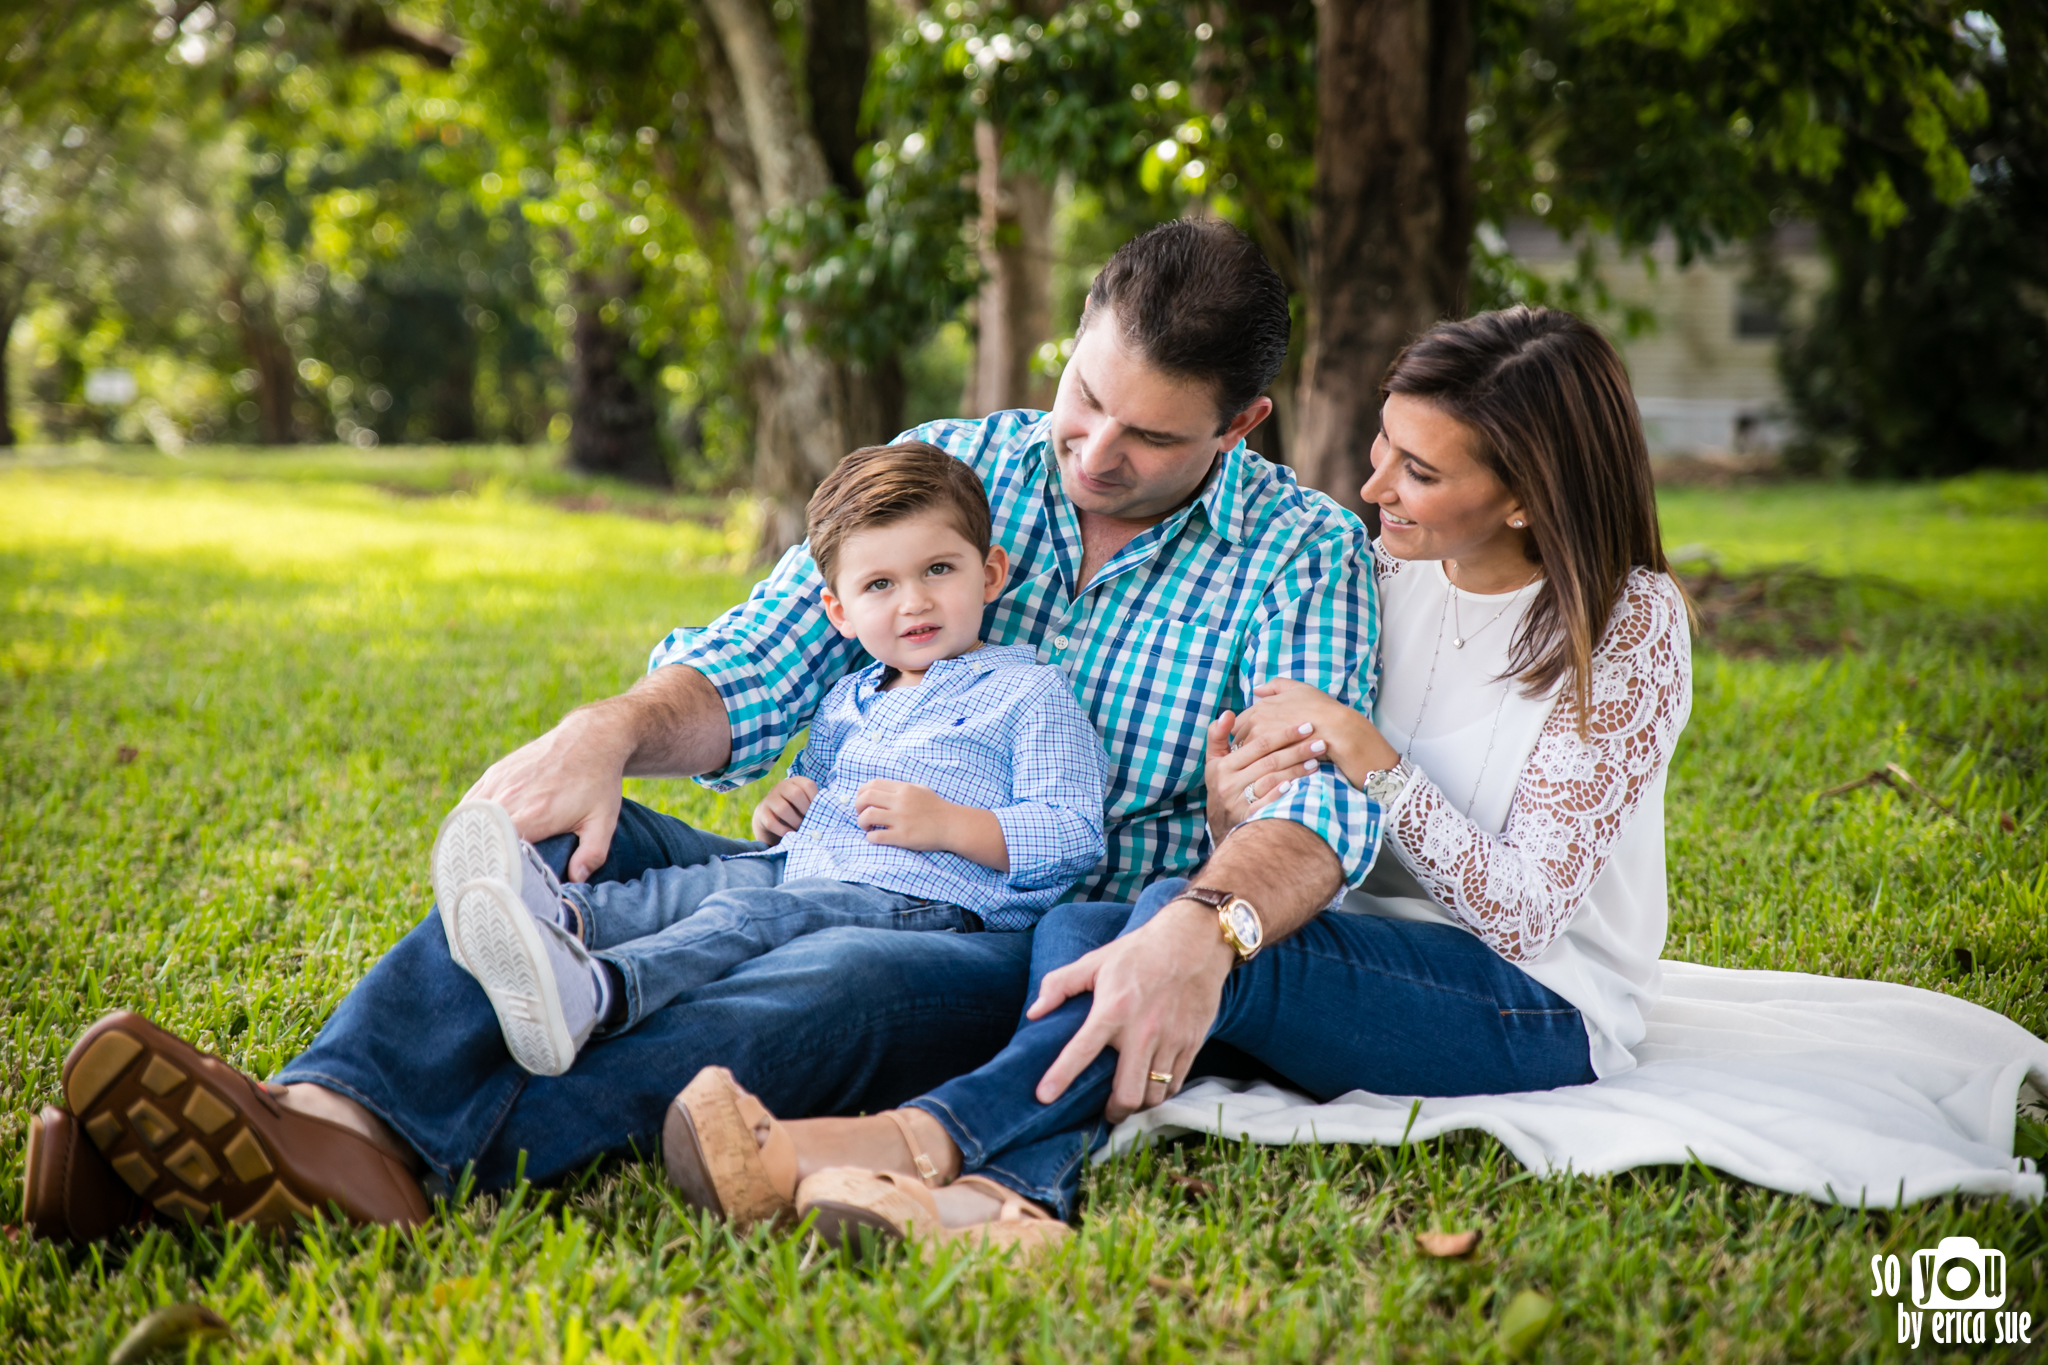 lifestyle-family-photography-so-you-by-erica-sue-davie-8611.jpg